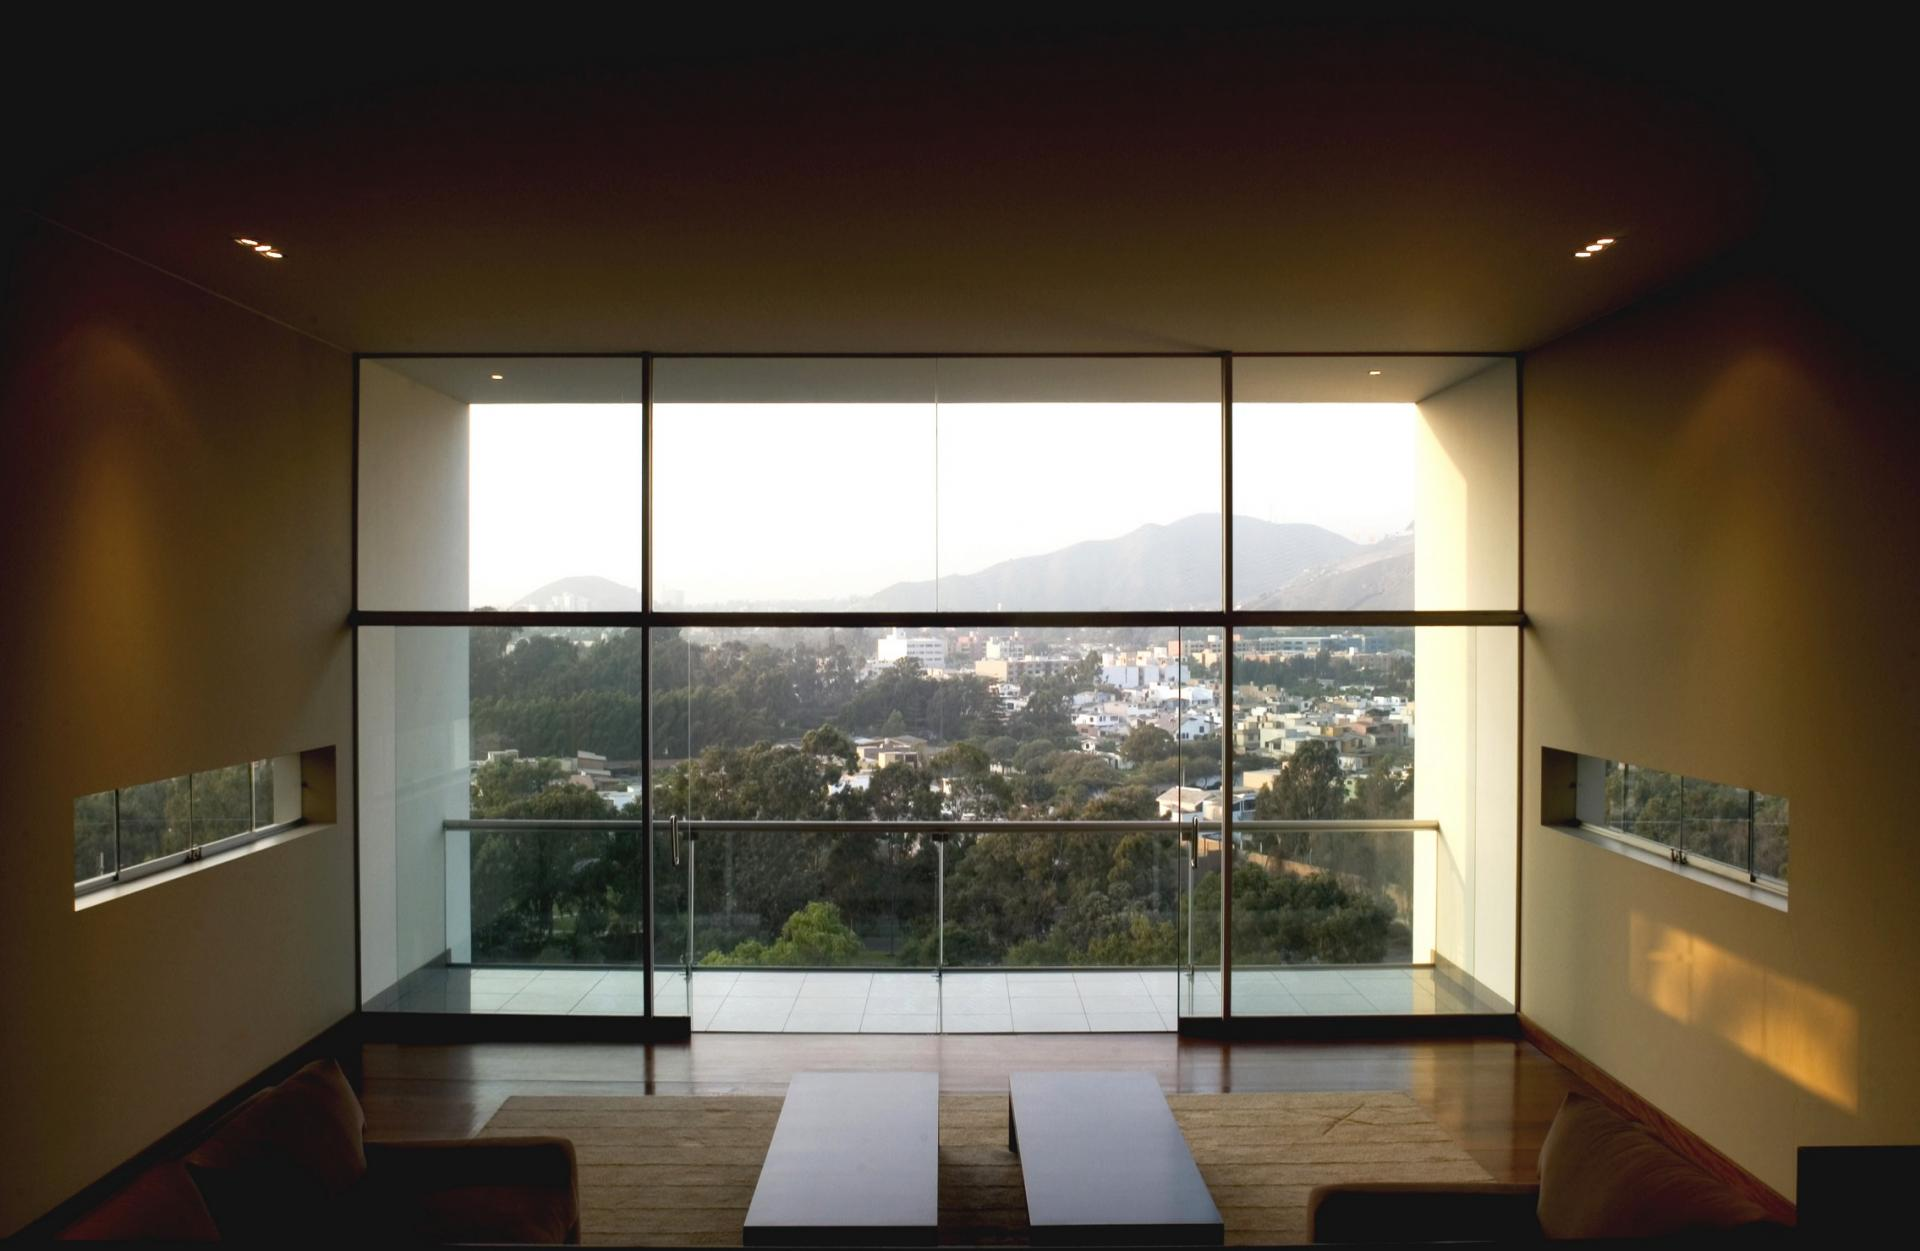 Luxurious Home Interior Design With Small Swimming Pool : City View Seen From Living Space Inside Through Glass Wall